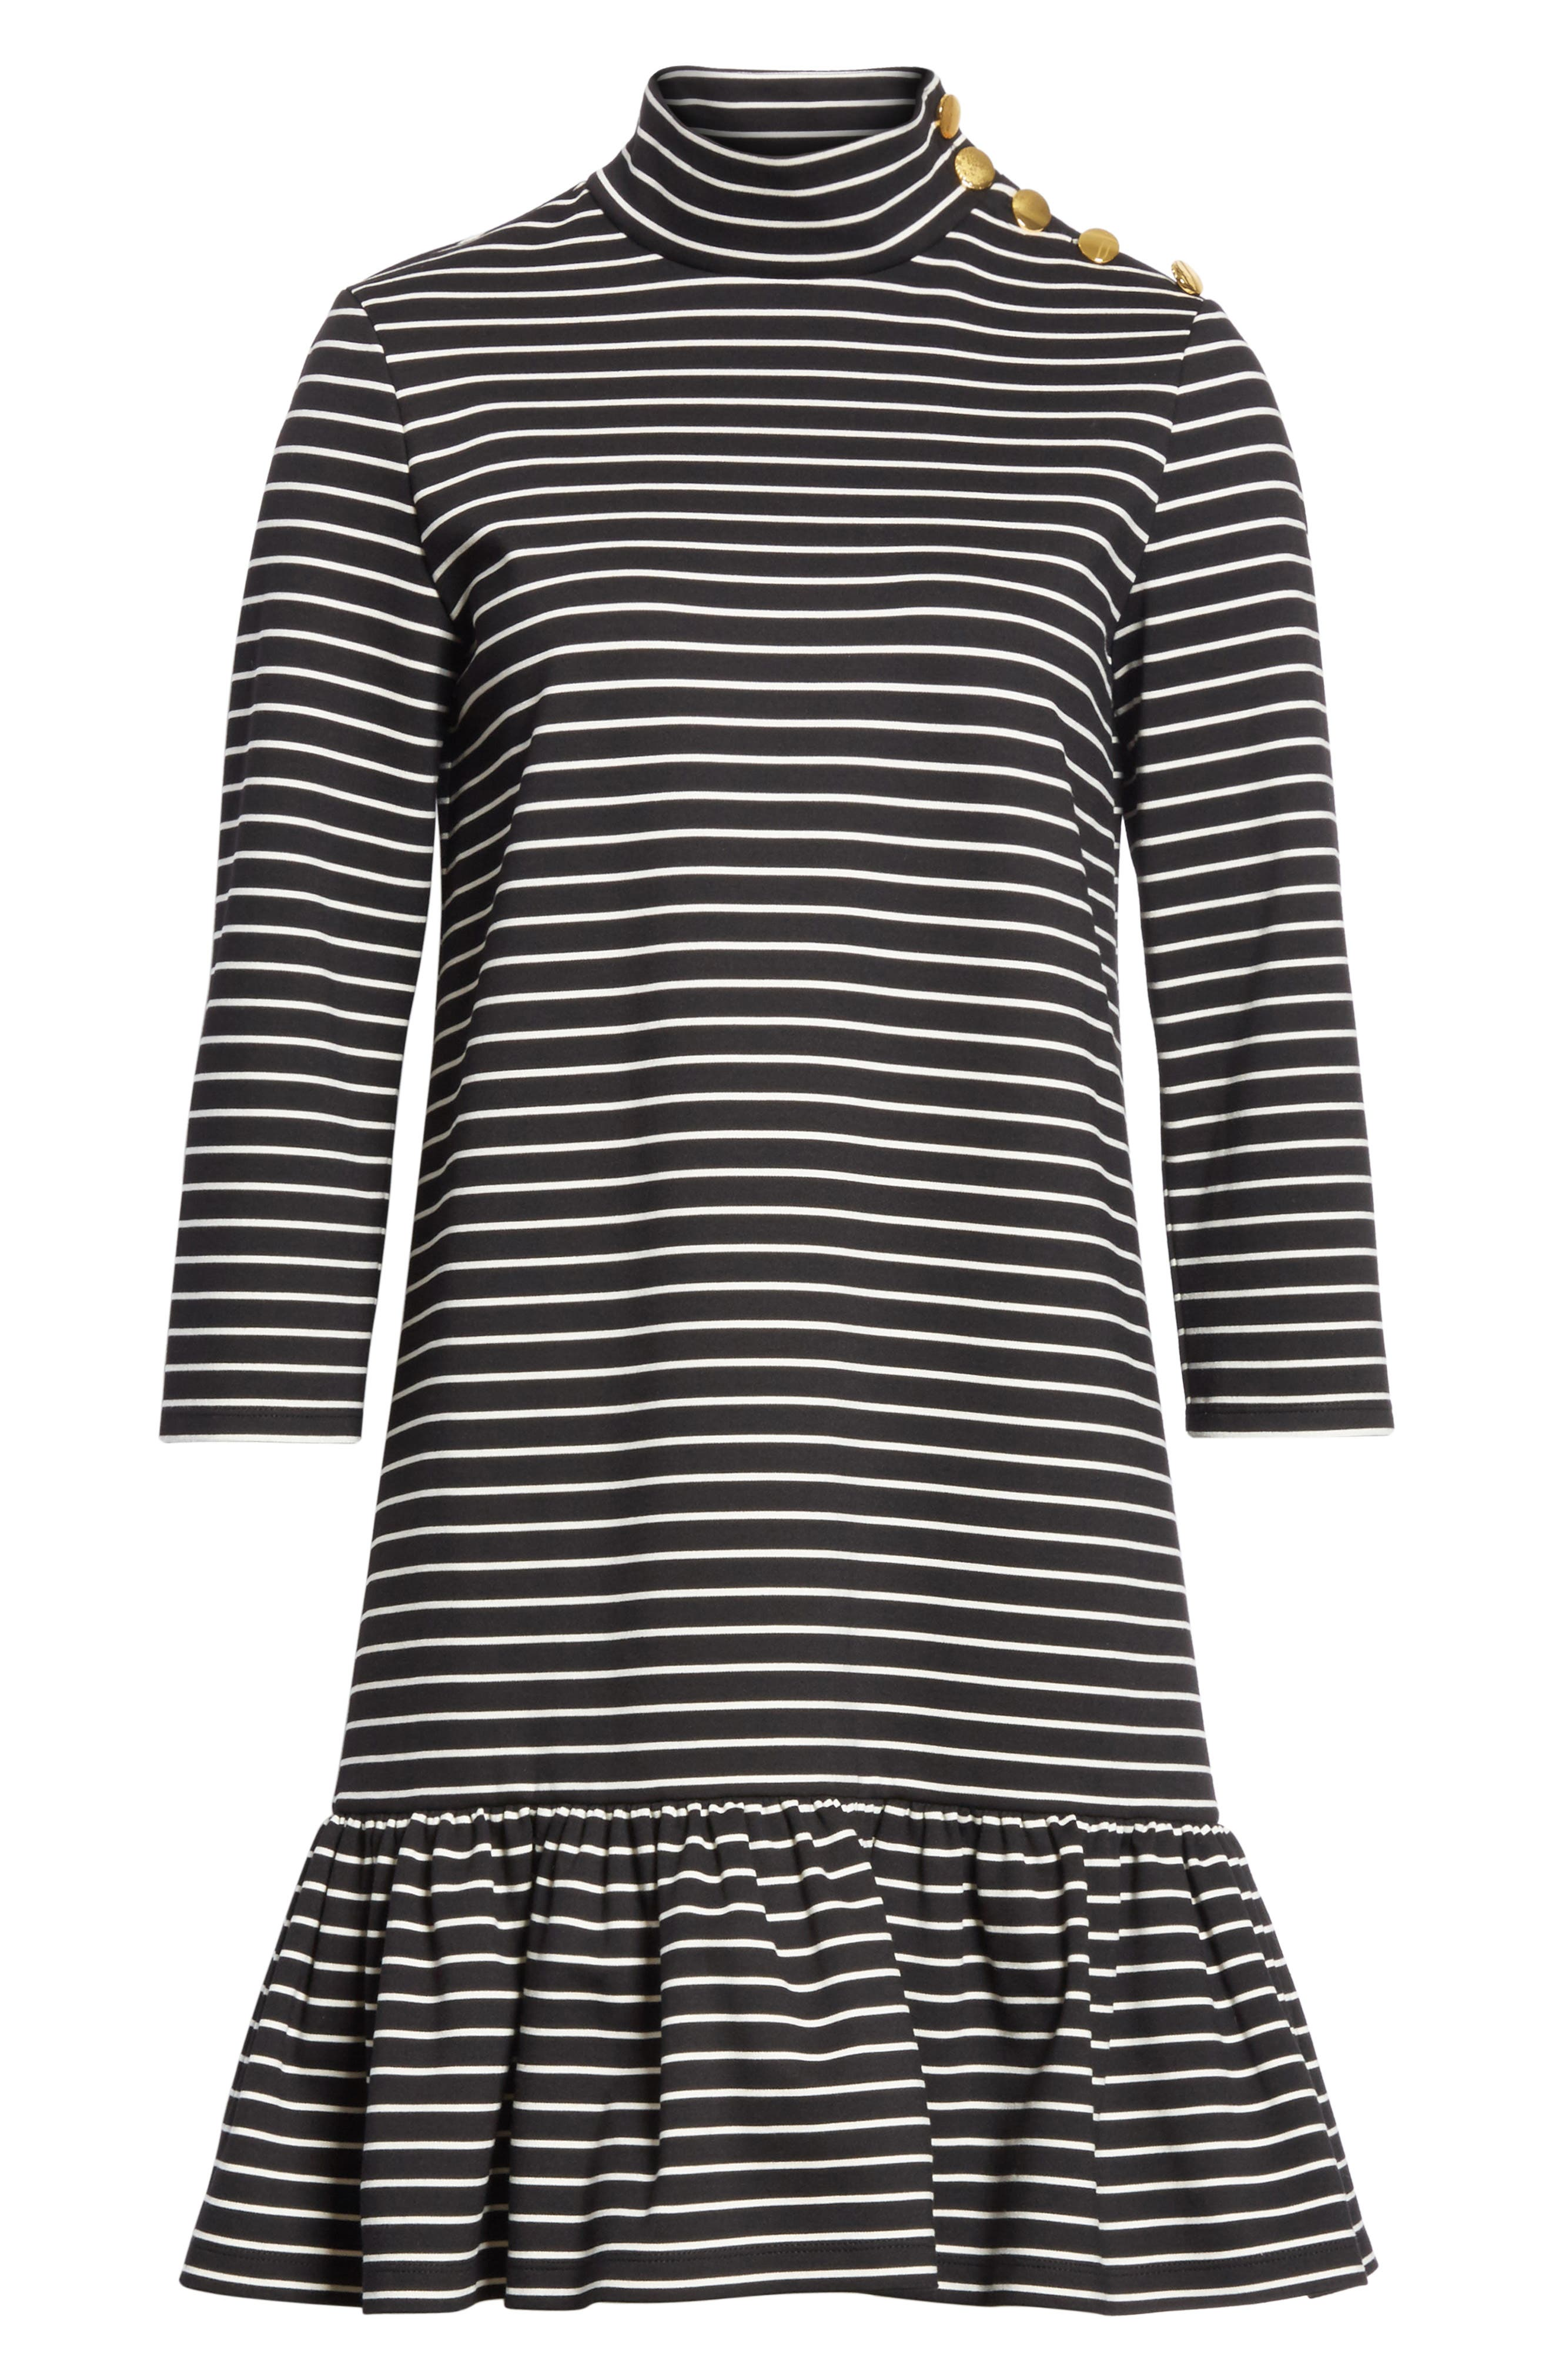 mock neck stripe knit dress,                             Alternate thumbnail 6, color,                             Black/ Off-White